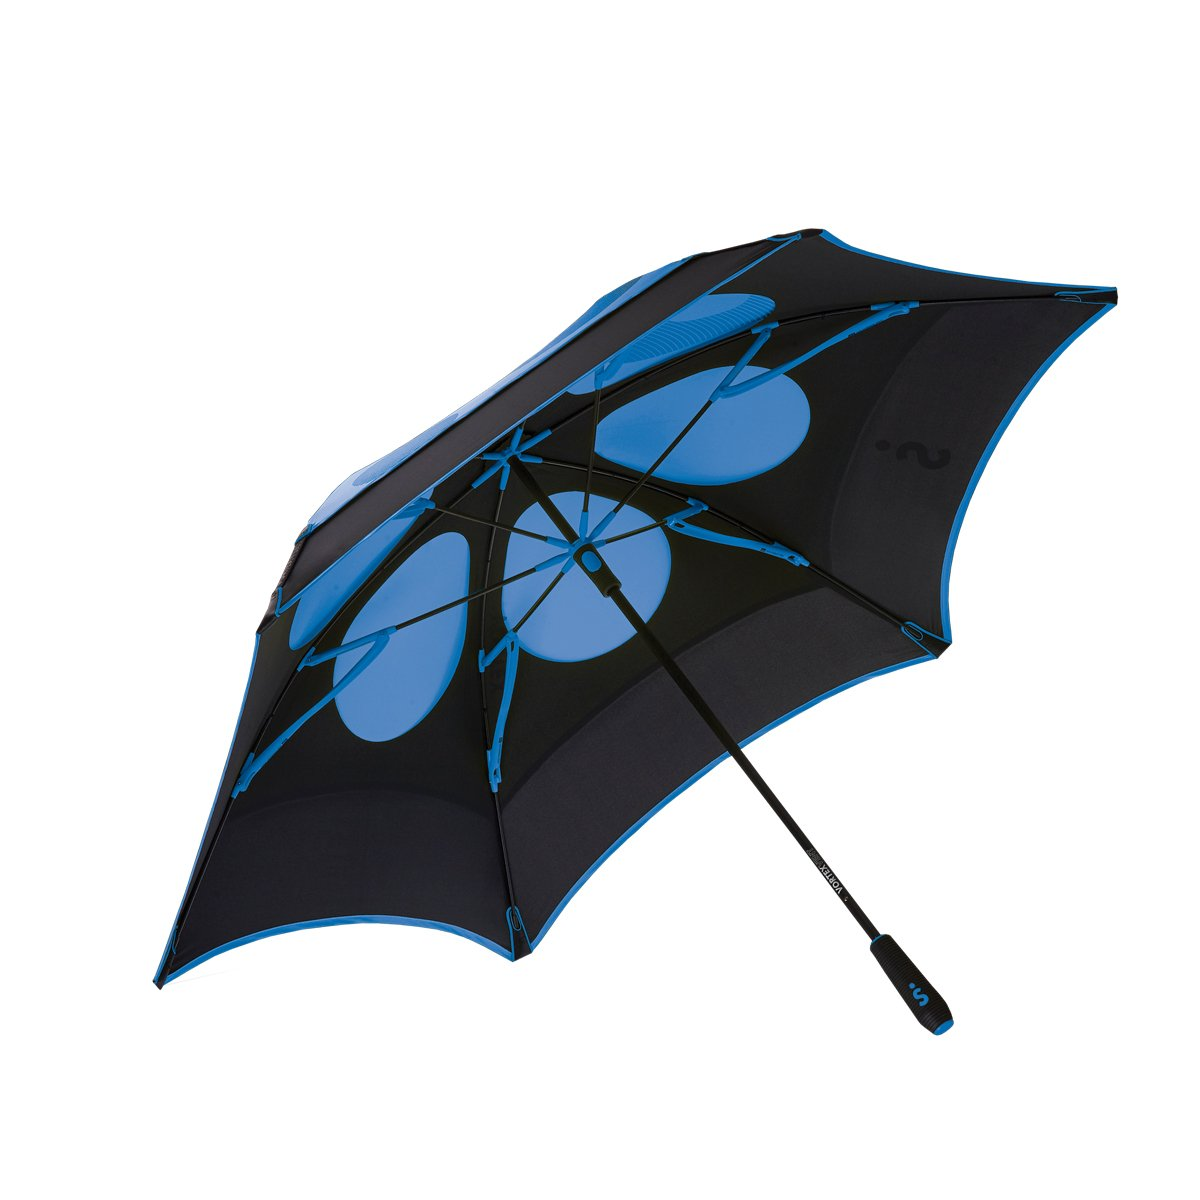 ShedRain® Vortex Vent Pro Golf Umbrella: Black and Sapphire